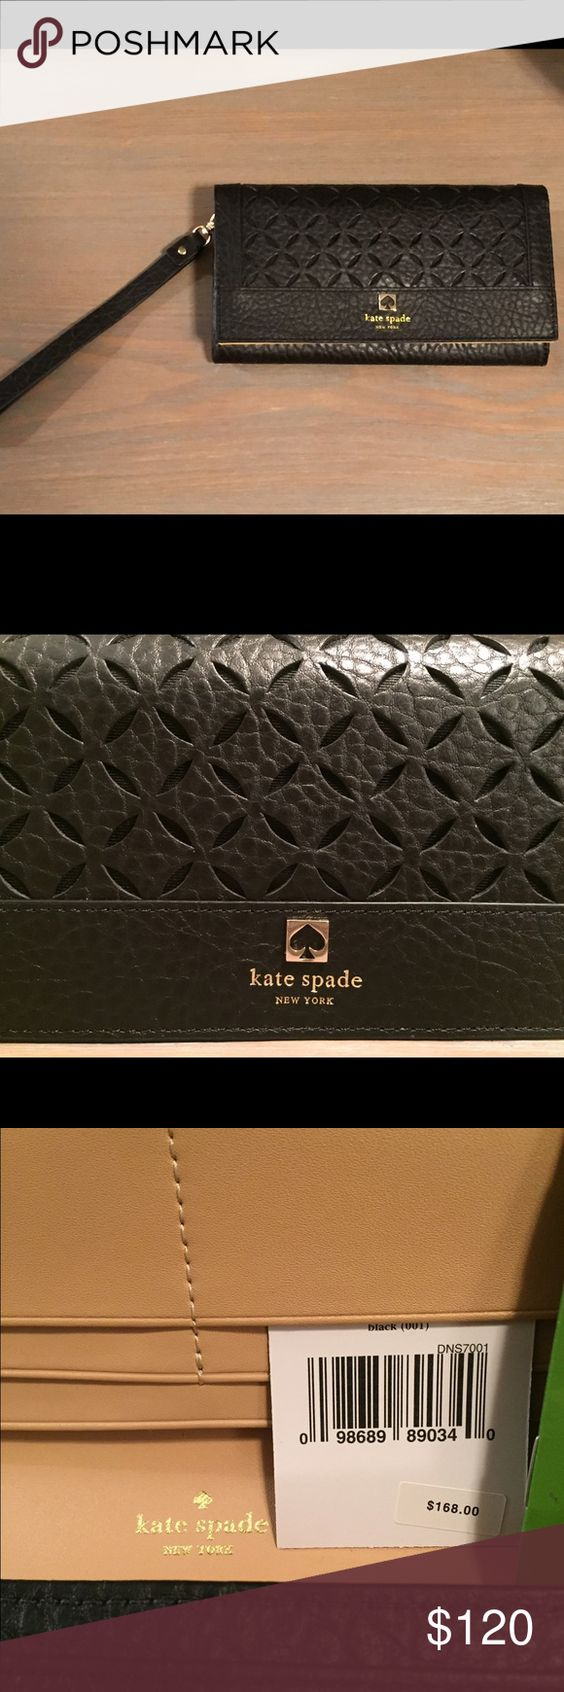 Kate Spade Perri Lane Linney wristlet. NWT! New with Tag - never been carried/used. Can be used as a wristlet or a wallet. Wristlet strap is removable. kate spade Bags Clutches & Wristlets